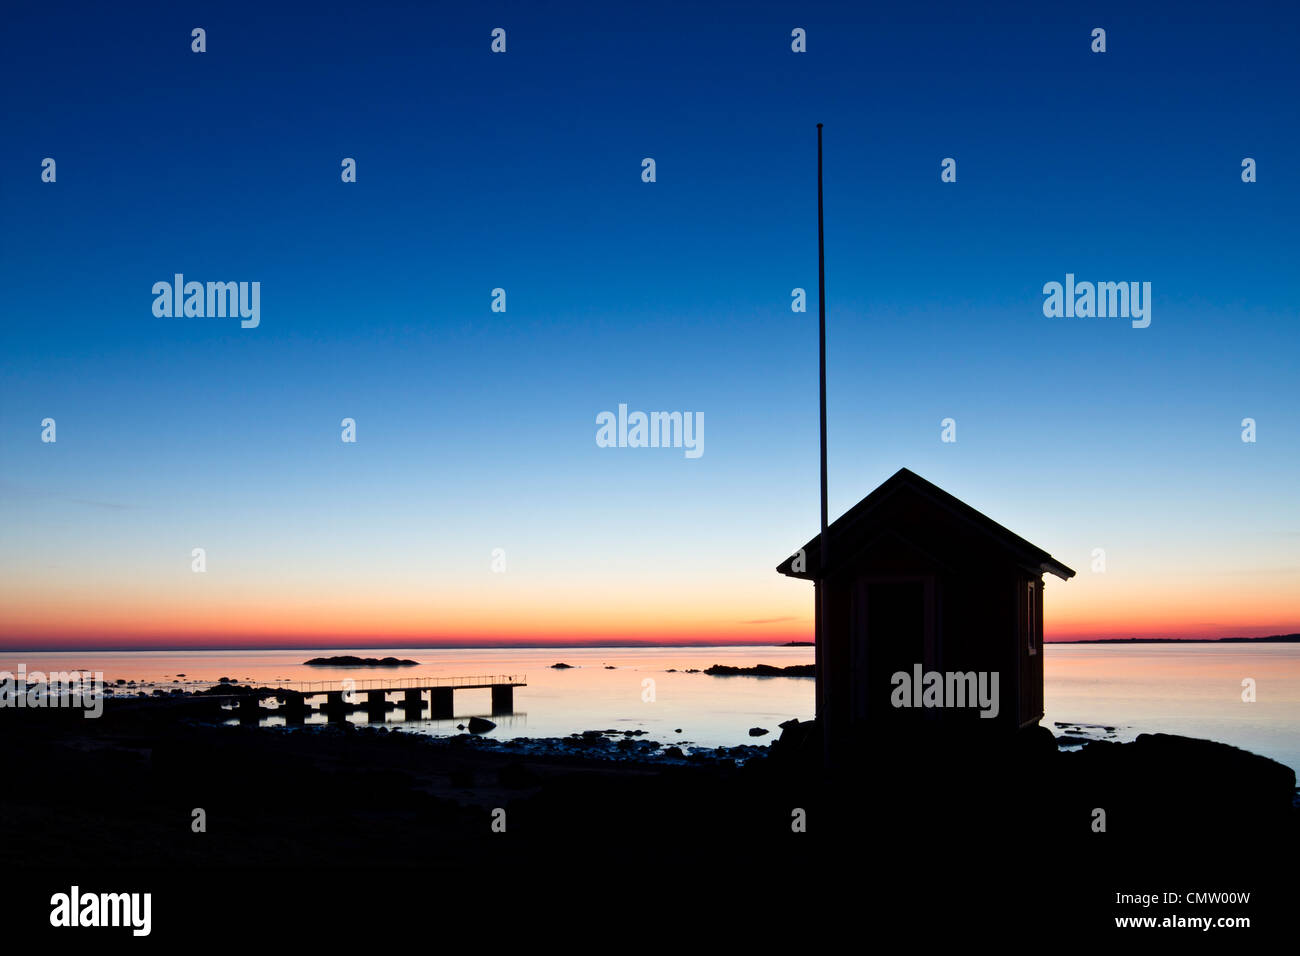 Silhouette Lodge am Meer Stockbild